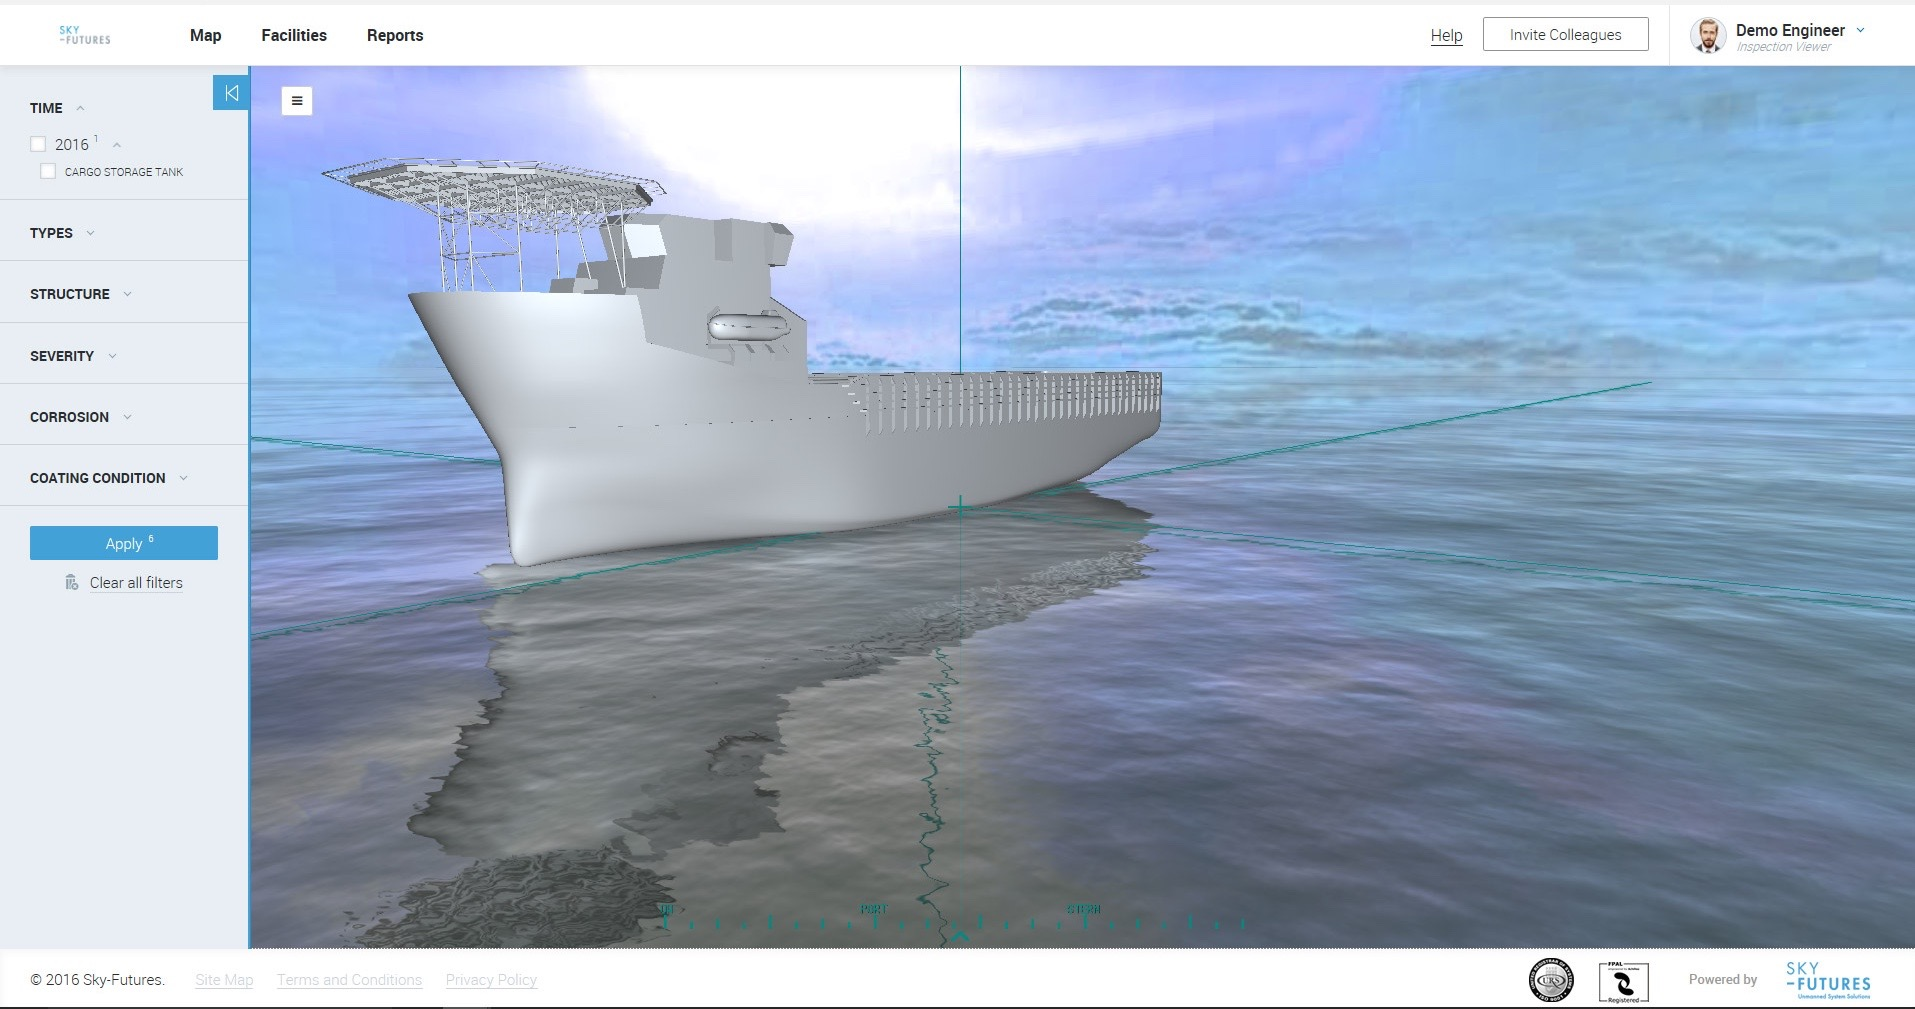 fpso_3 American Bureau of Shipping Green-Lights Sky-Futures' Drone Inspections